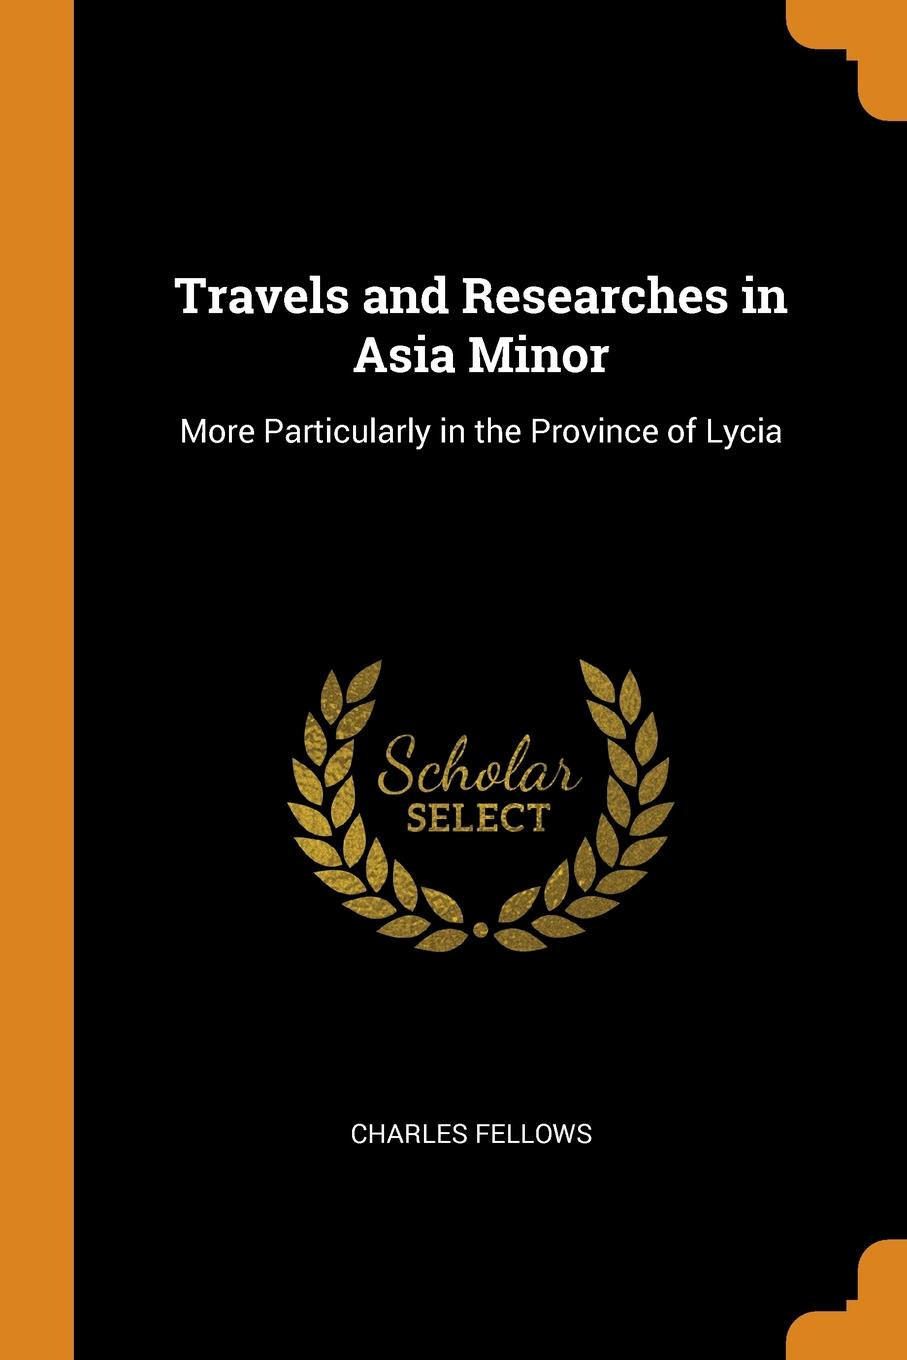 Travels and Researches in Asia Minor. More Particularly in the Province of Lycia